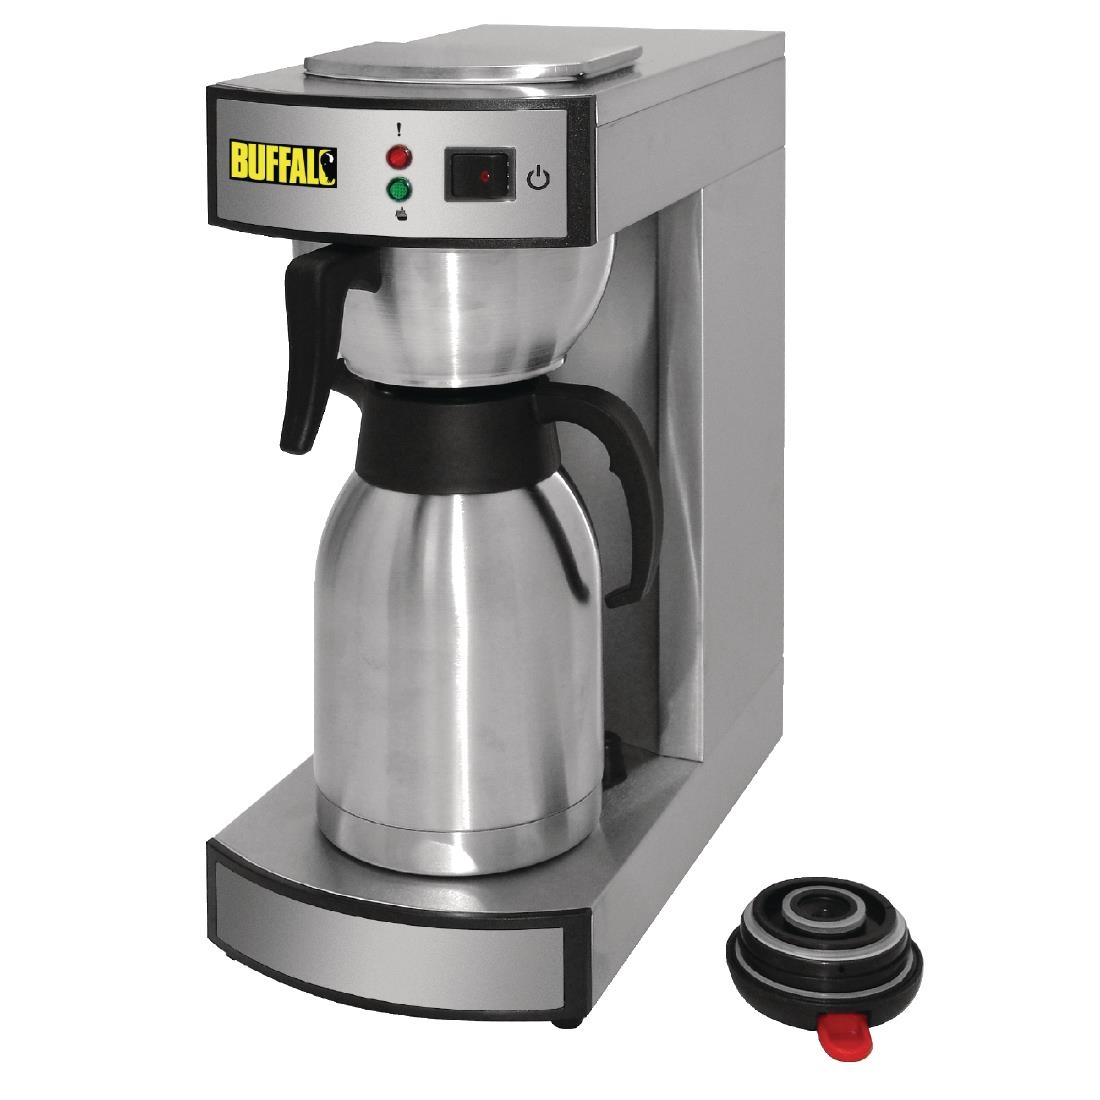 Electronic Buffalo Coffee Machine buffalo pour on coffee machine dn487 buy online at nisbets browse our full range